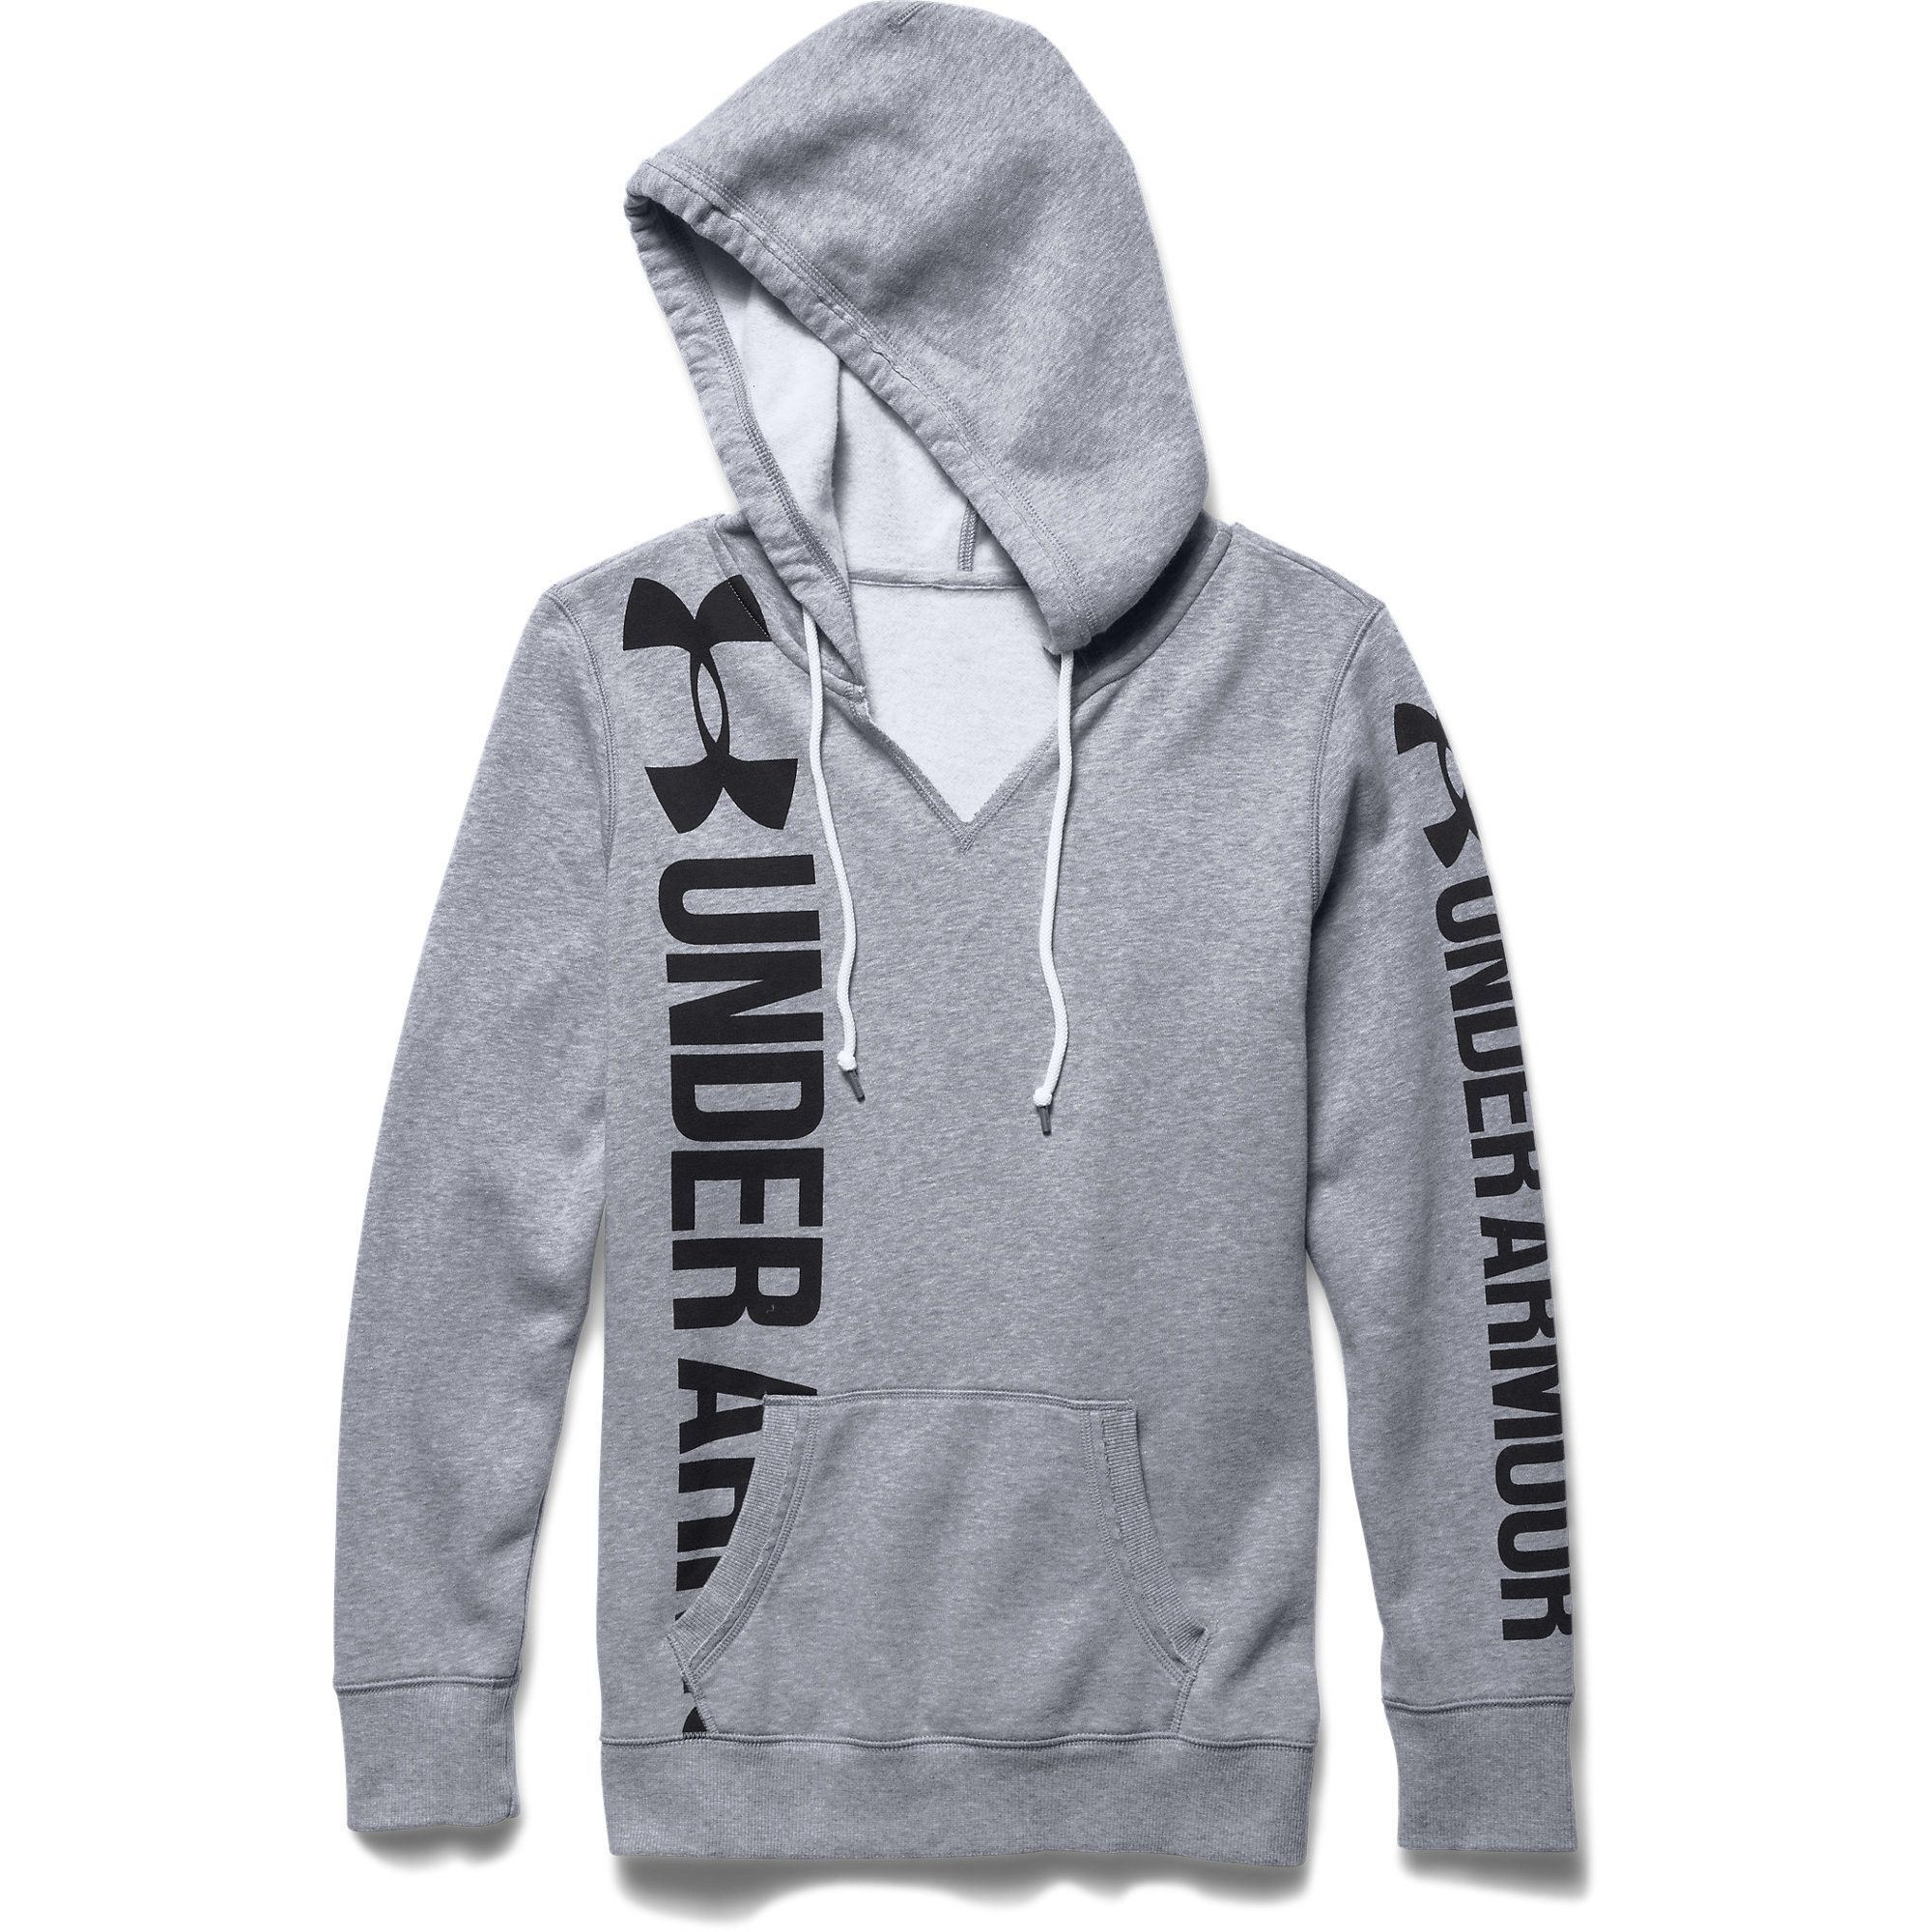 Under Armour Women S Favorite Fleece Branded Hoodie True Gray Heather Under Armour Outfits Womens Workout Outfits Hoodies [ 2000 x 2000 Pixel ]